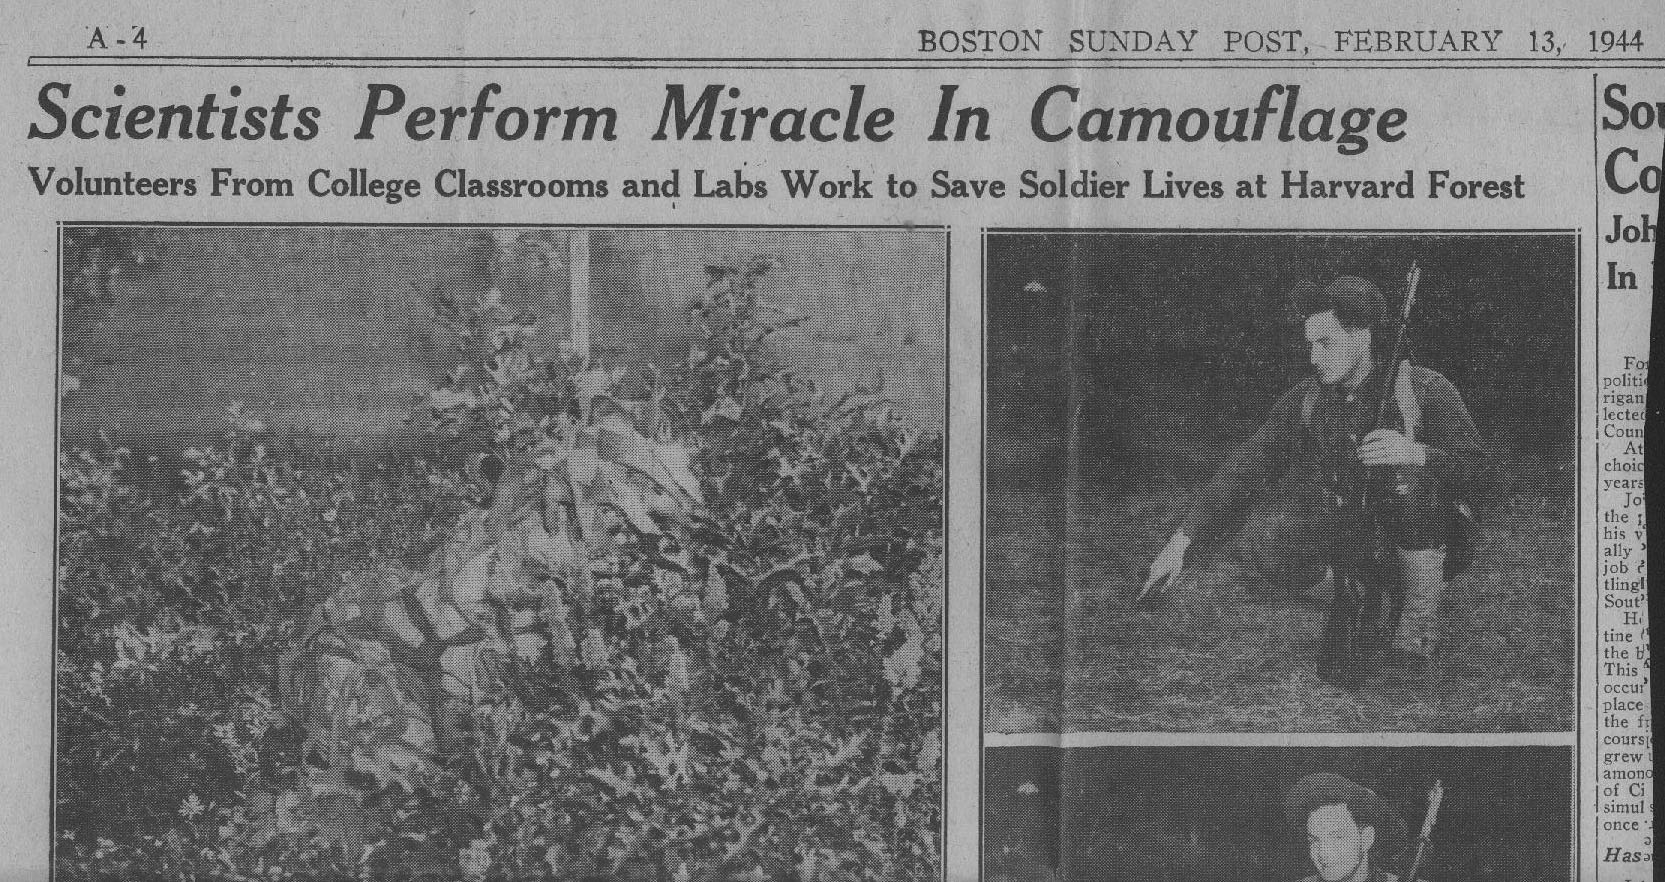 Camouflage Research Article